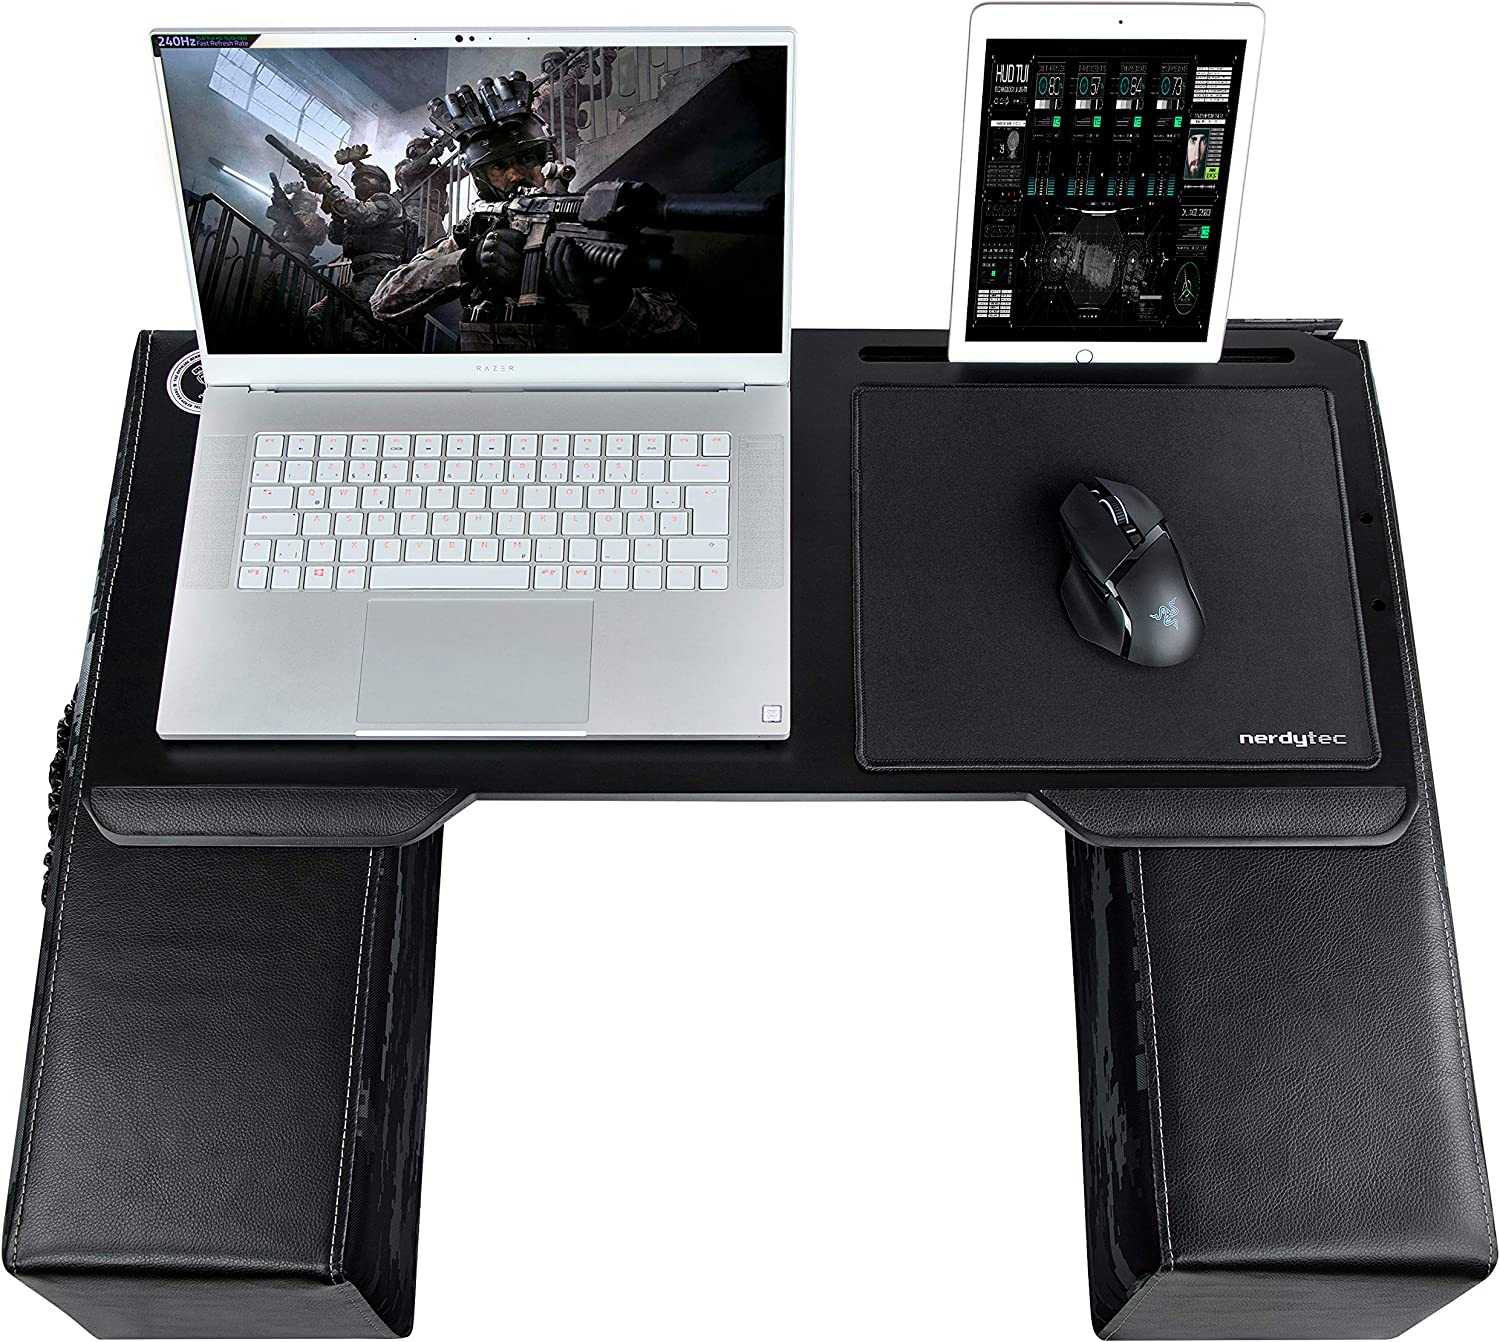 Including Pillows Ergonomic Lap Desk for Notebooks or Wireless Equipment Mousepad Couchmaster CYBOT